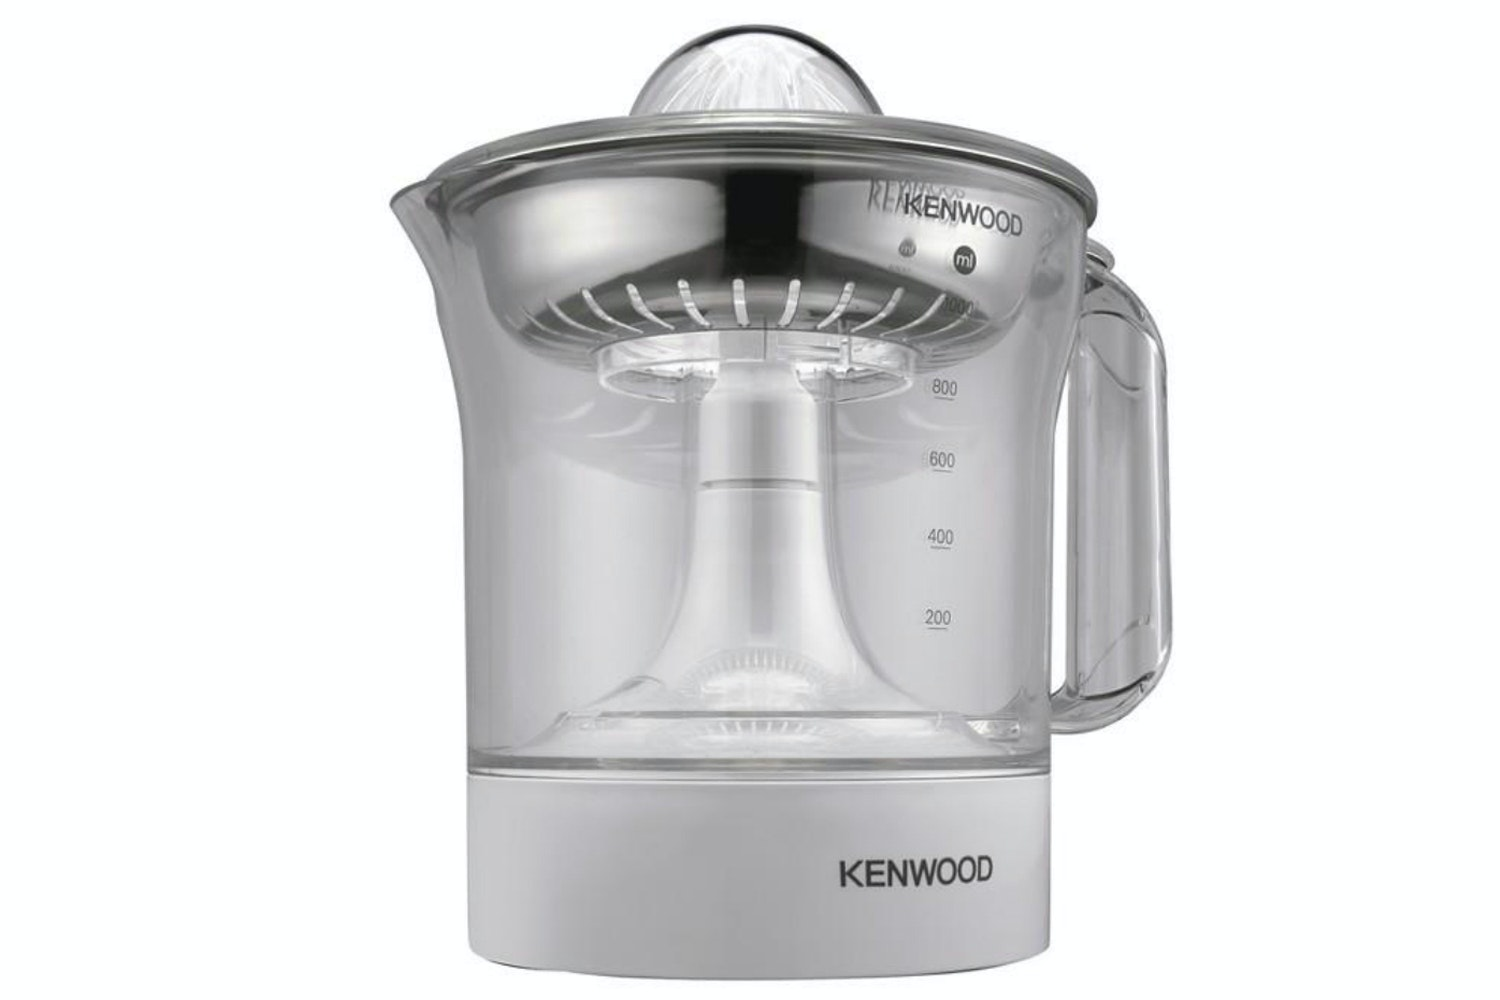 Kenwood Citrus Press Juicer